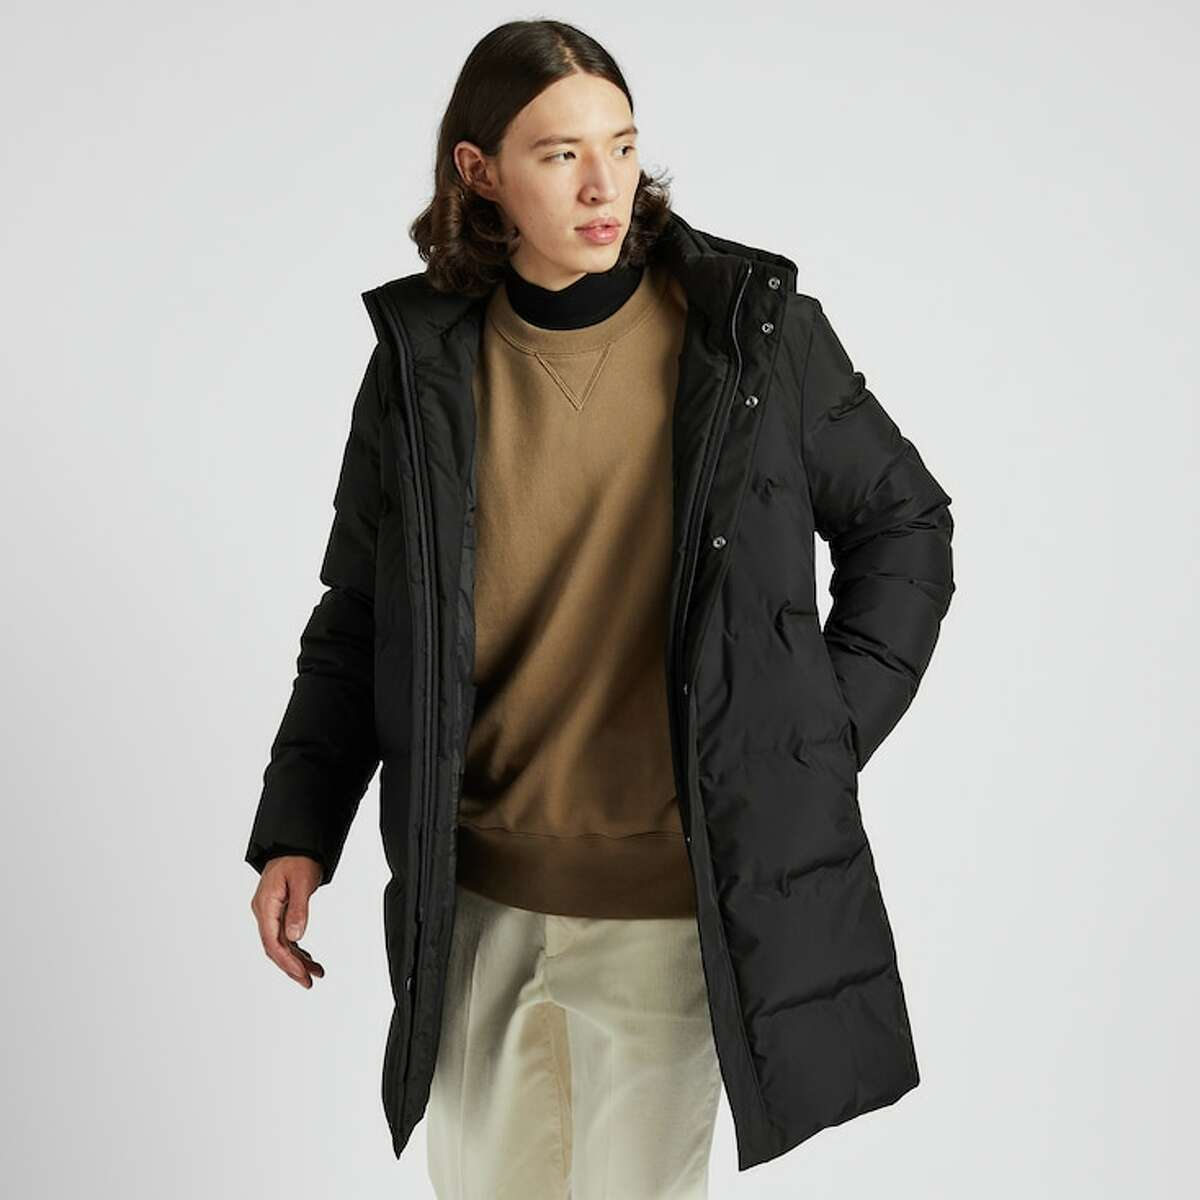 $50 off men's Seamless Down Coats and women's Seamless Down Coats from Uniqlo Buy at Uniqlo